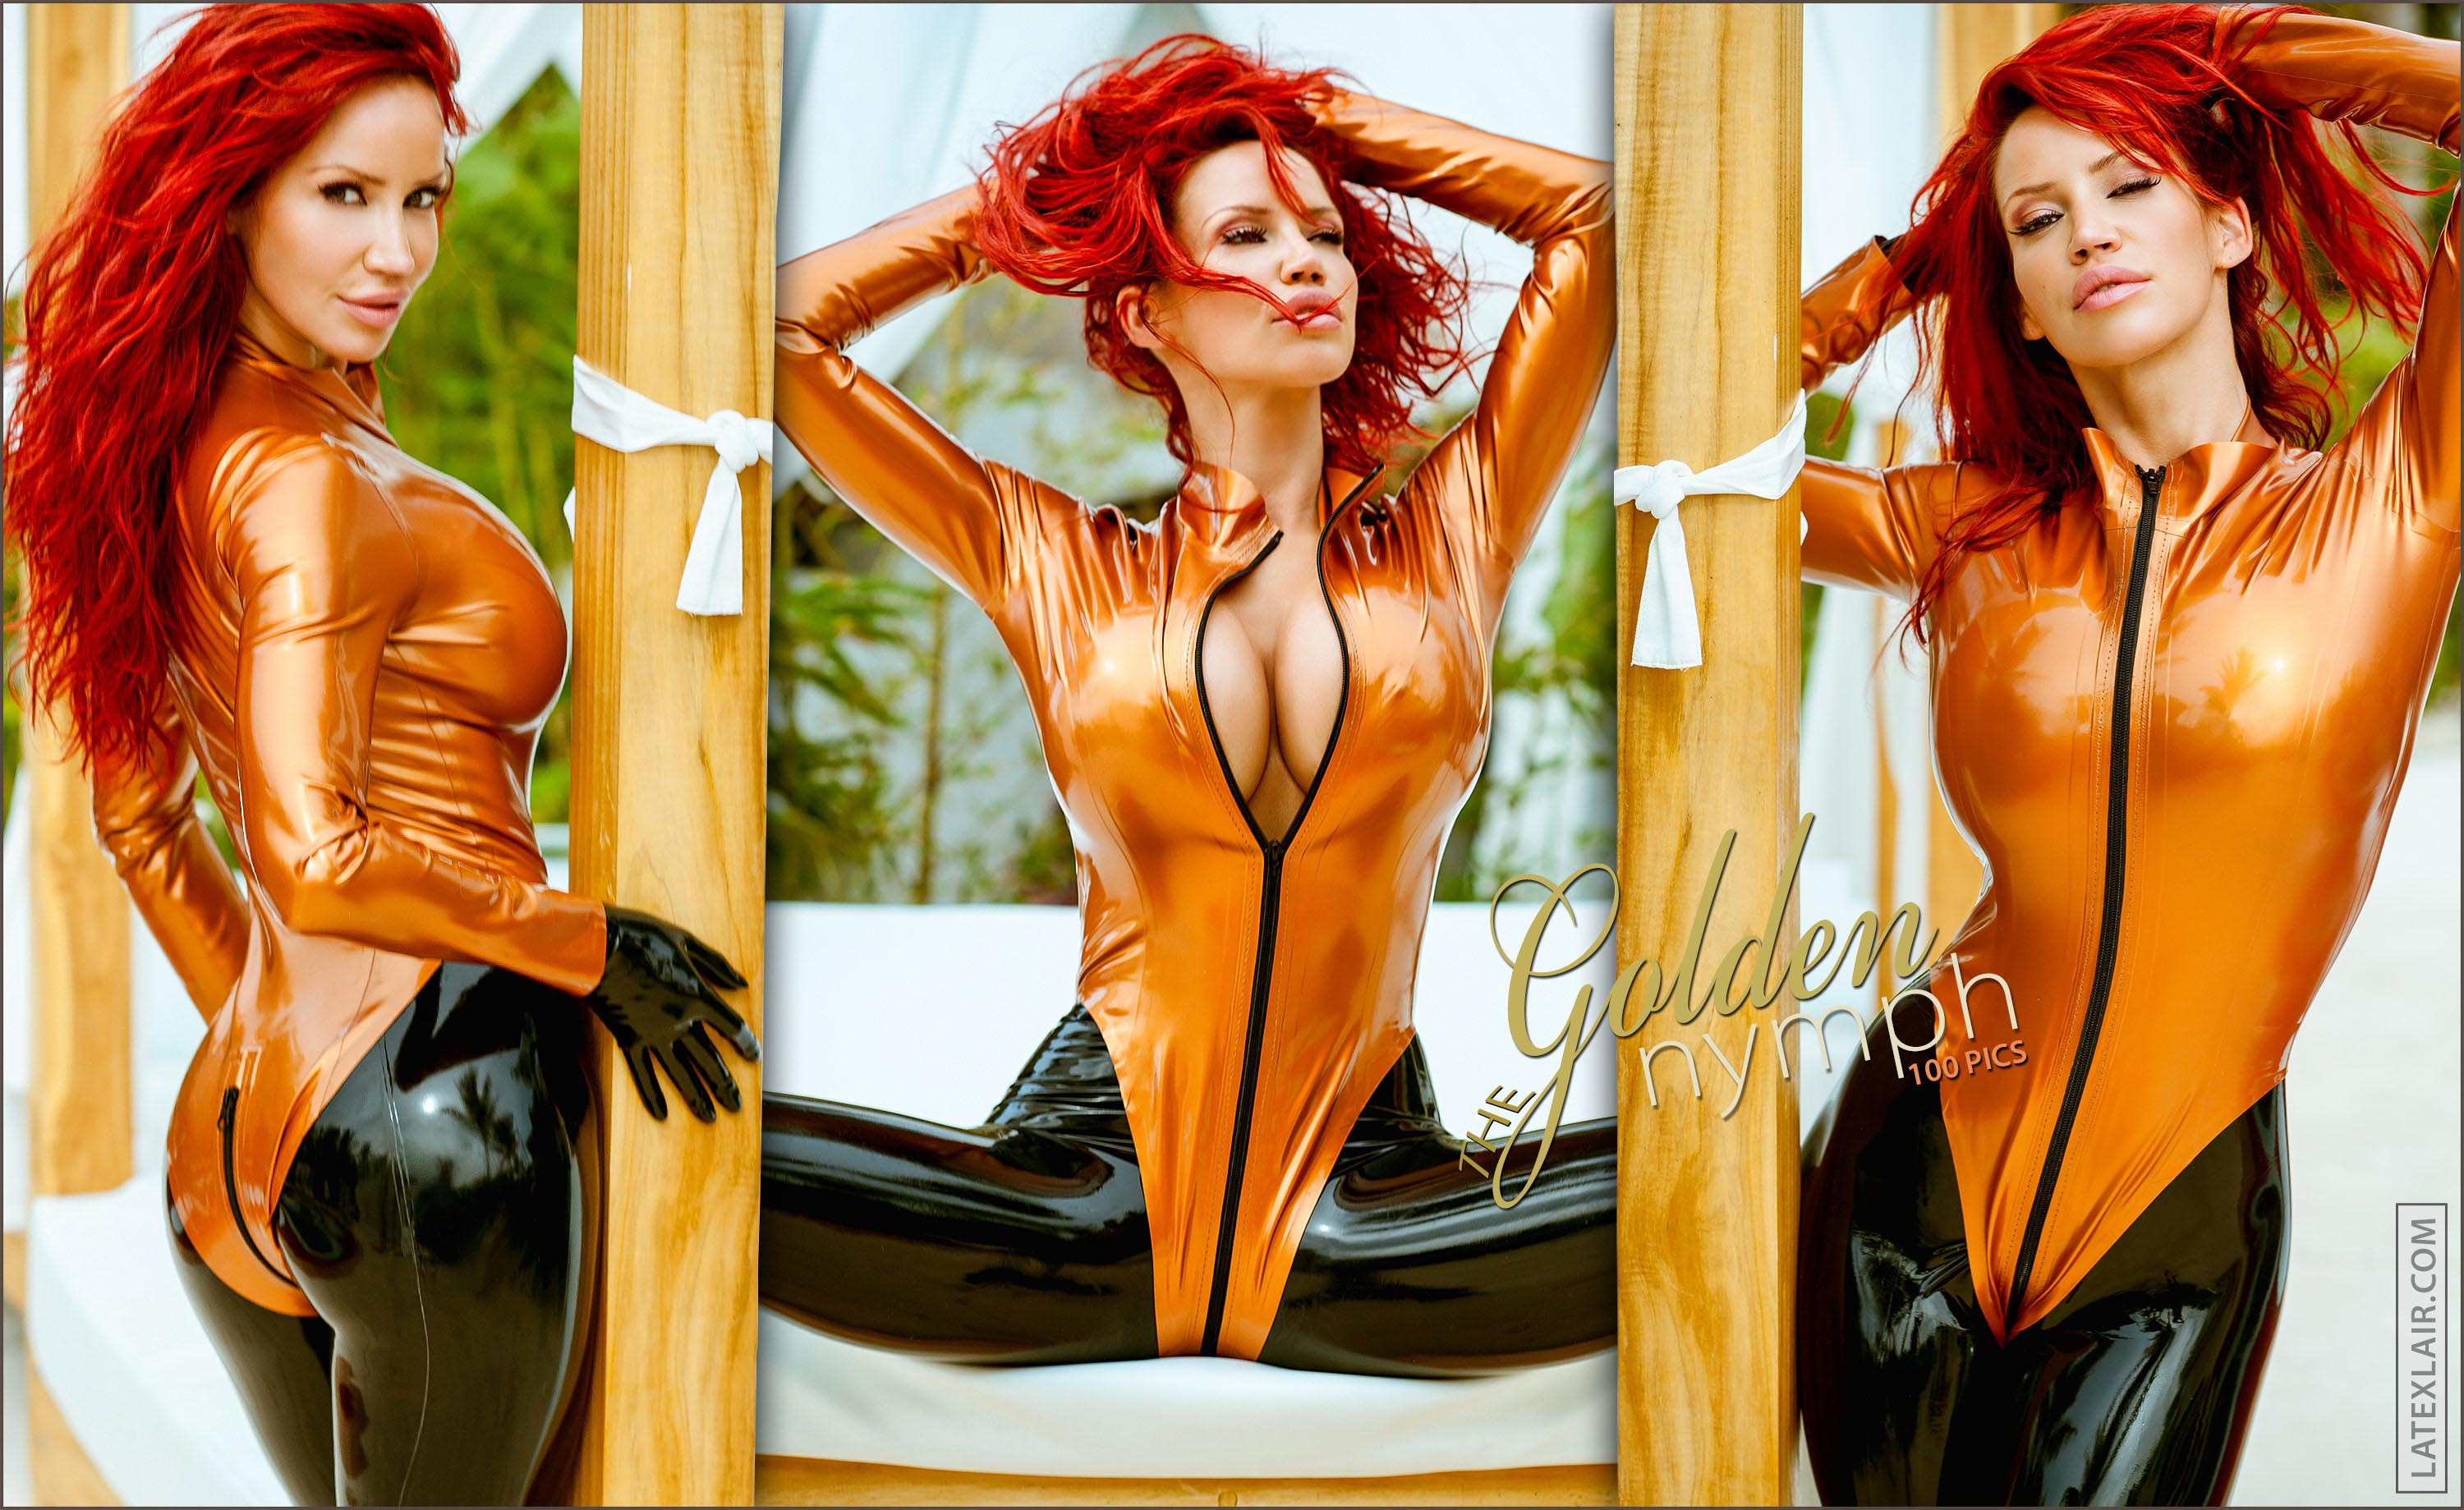 Bianca beauchamp golden nymph images 231